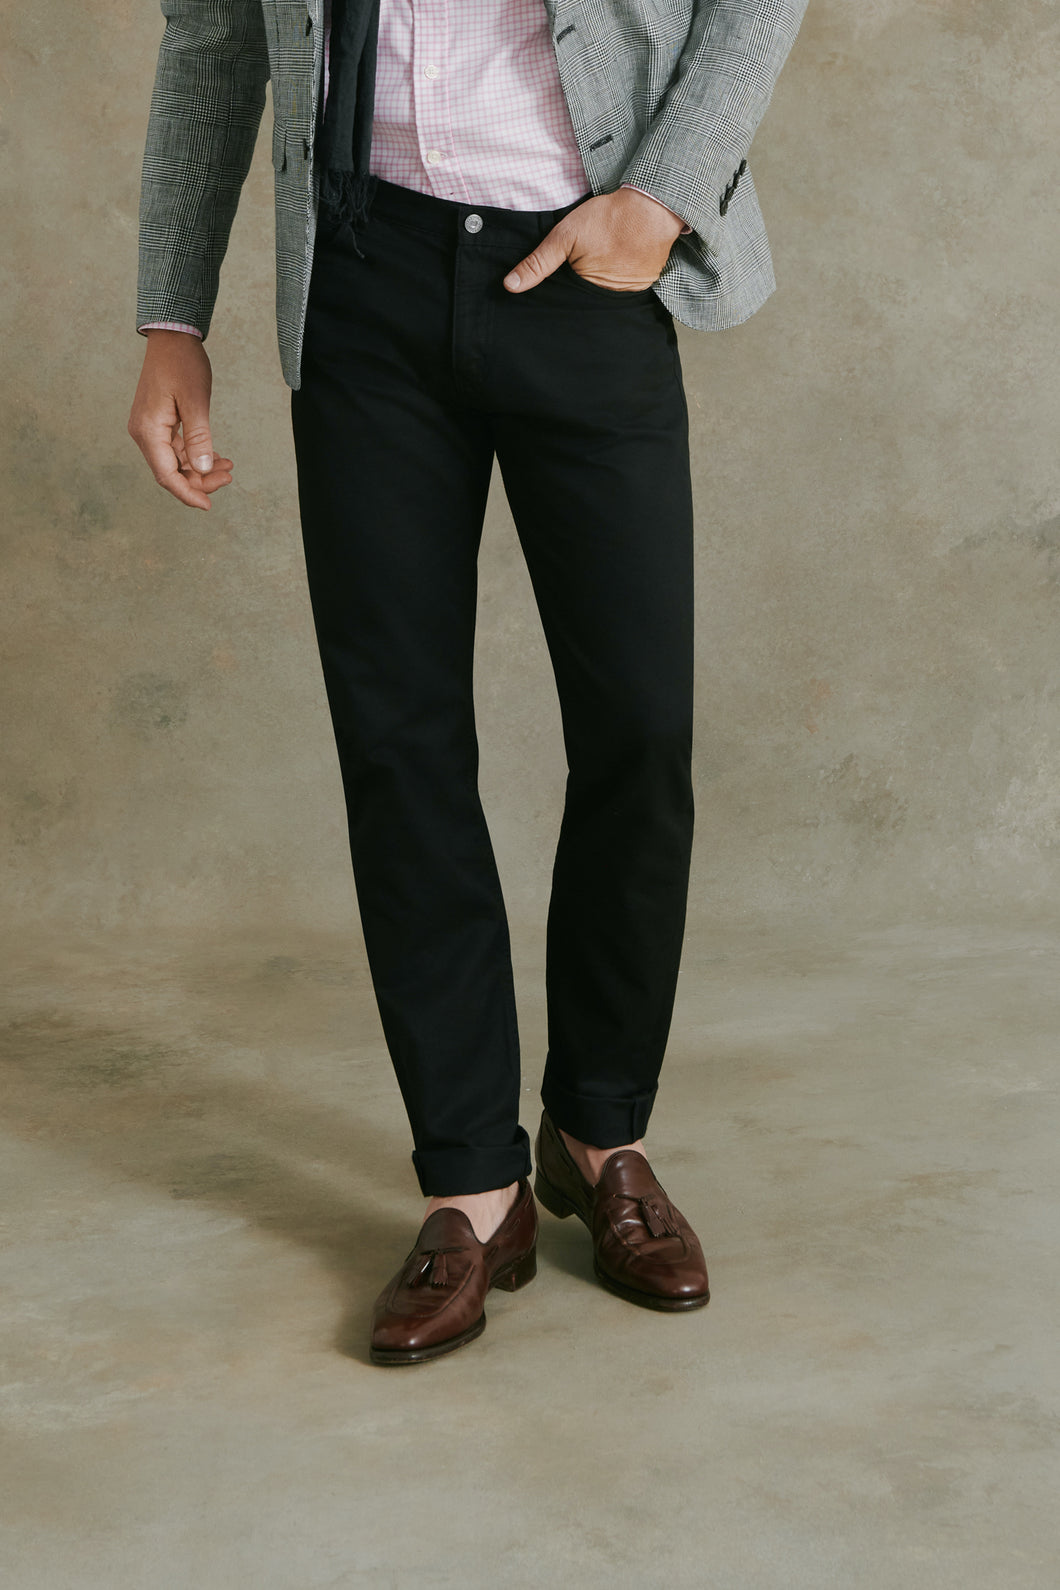 Barnard 5-Pocket Pant in Black